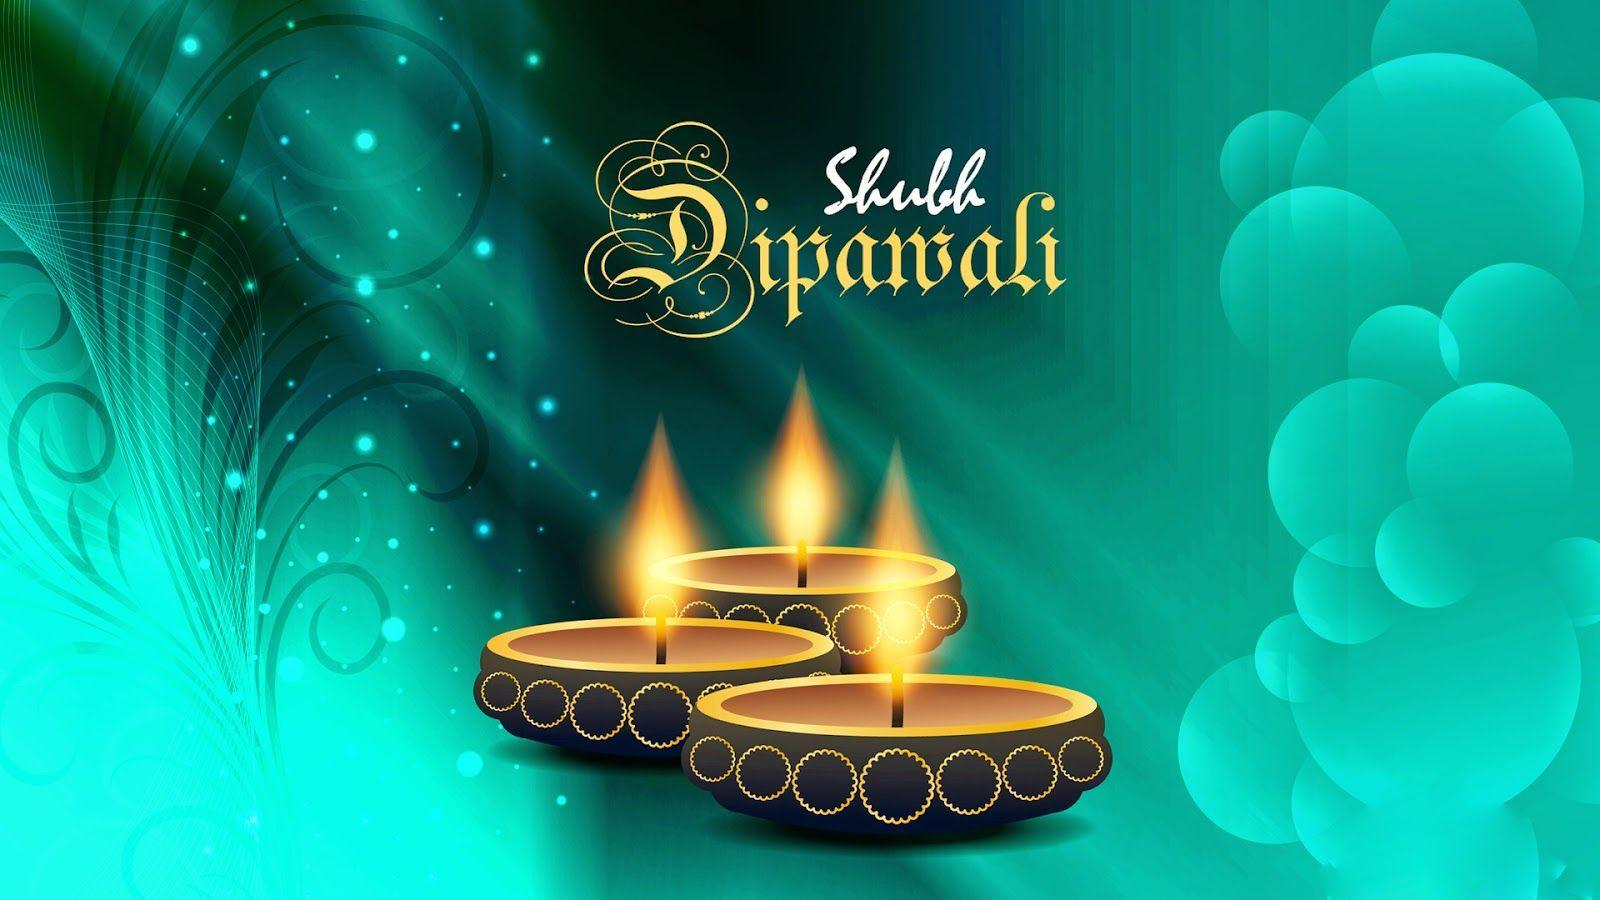 Diwali Wallpapers,Diwali Pictures,Wallpapers of Diwali,Wallpapers